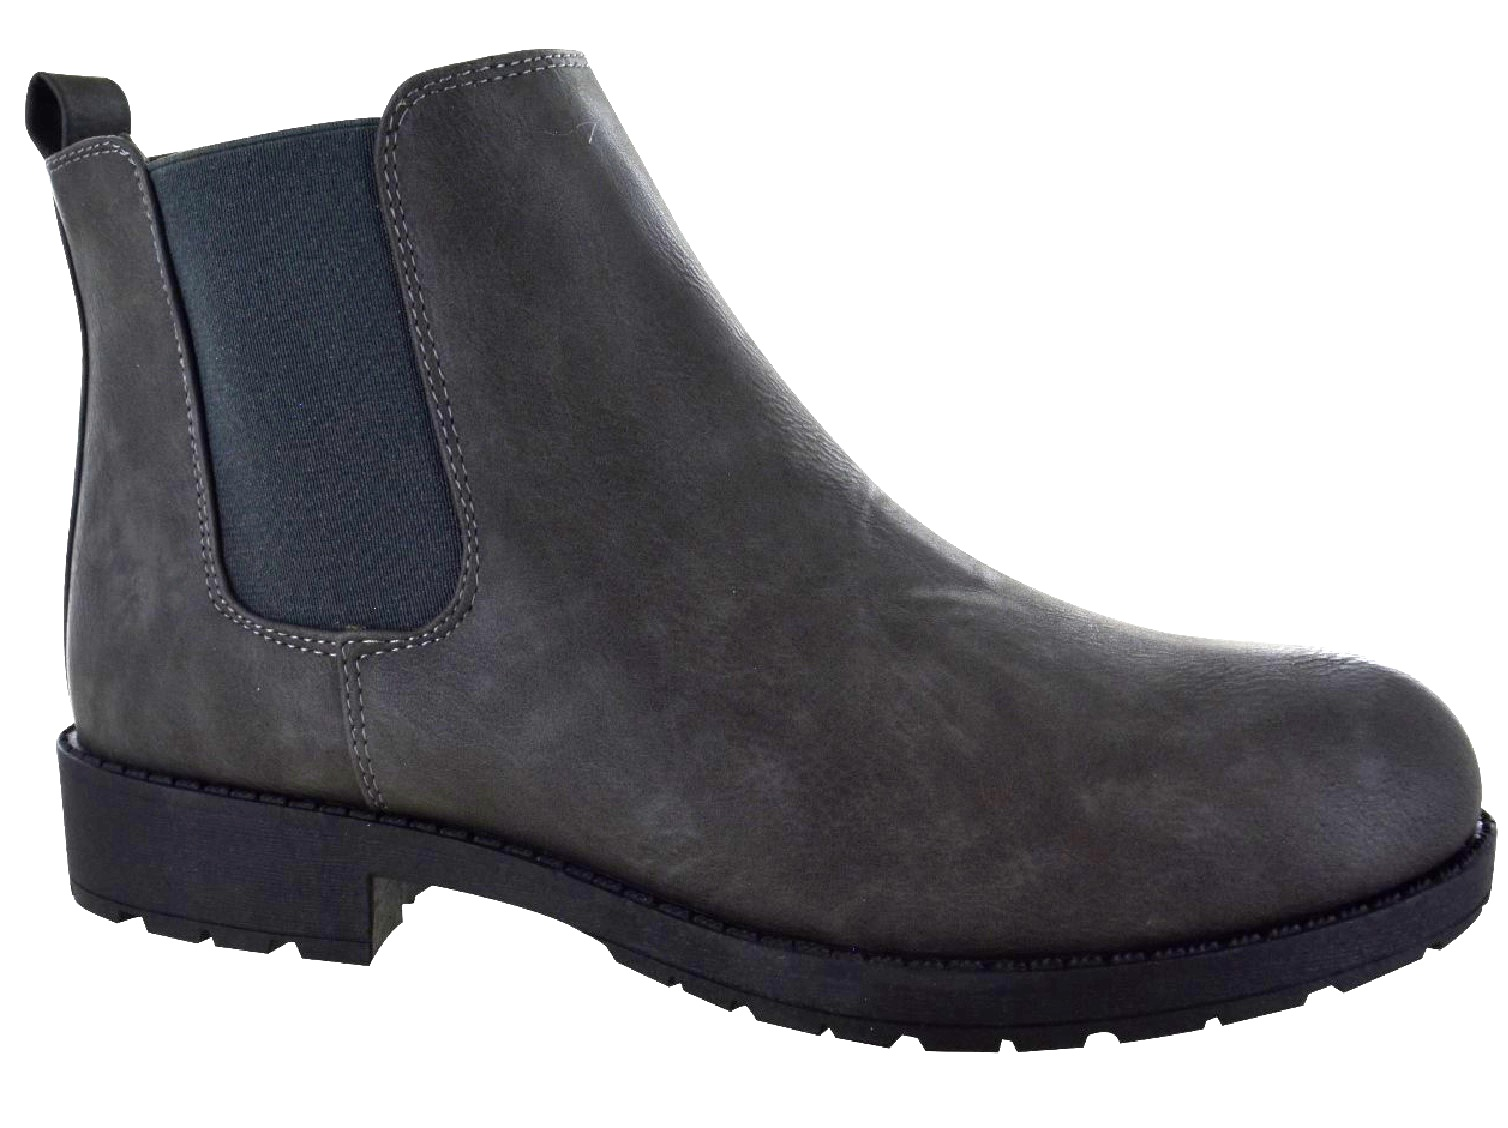 LADIES-WOMENS-CHELSEA-DEALER-SLIP-ON-FLAT-ANKLE-CAUSAL-LOW-HEEL-SHOES-BOOTS-SIZE thumbnail 7